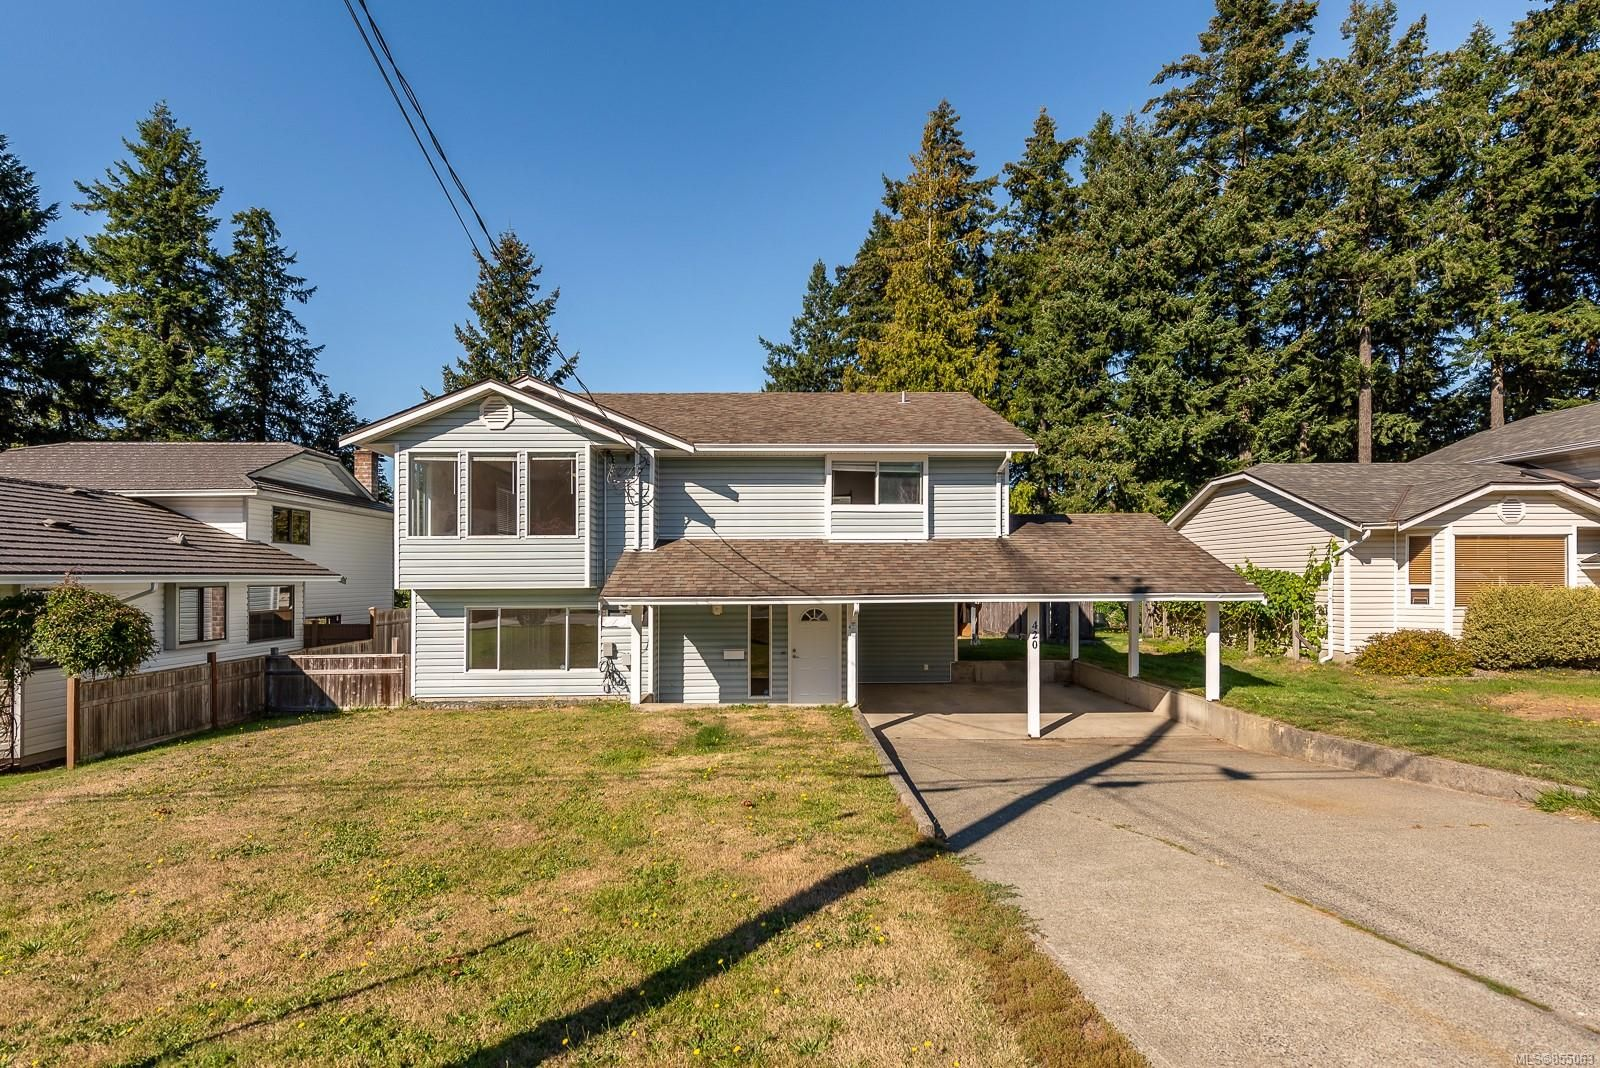 Main Photo: 420 S McPhedran Rd in : CR Campbell River Central House for sale (Campbell River)  : MLS®# 855063